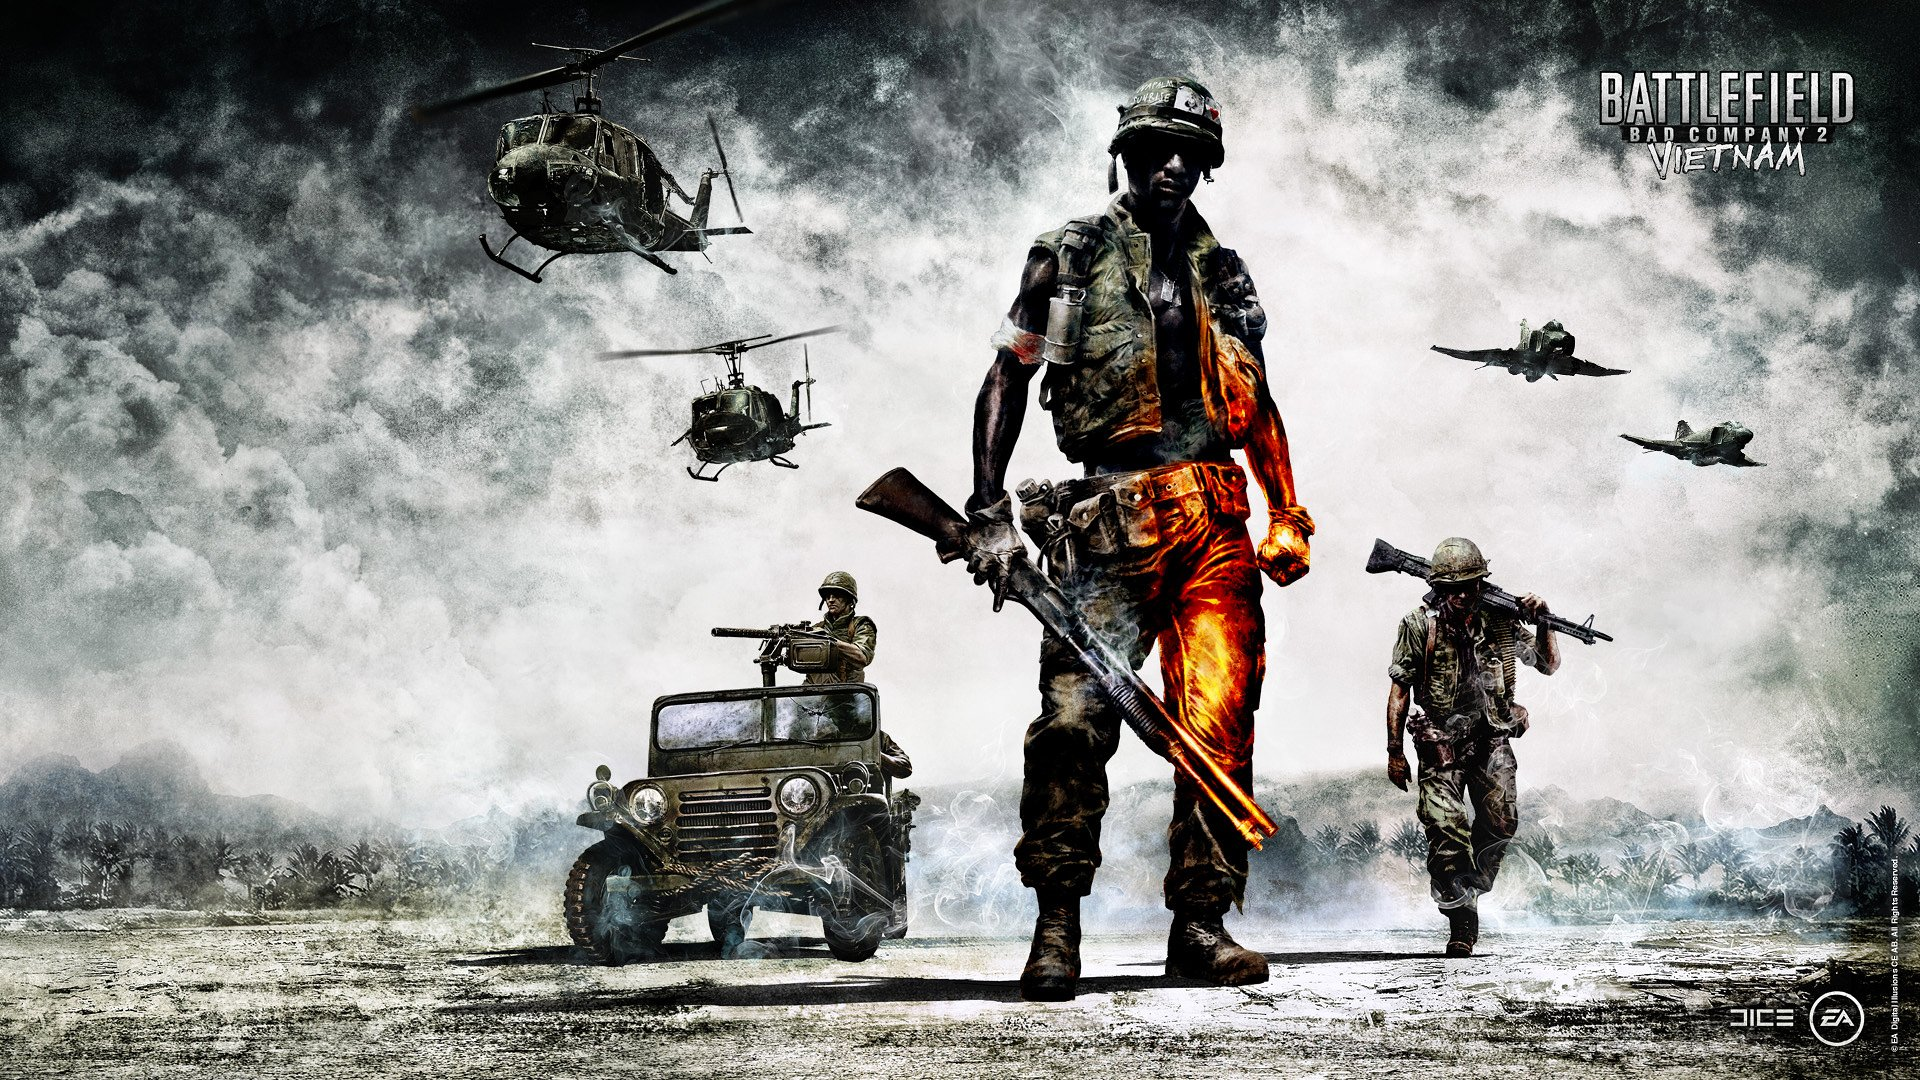 Battlefield Bad Company 2 Vietnam Wallpapers HD Wallpapers 1920x1080